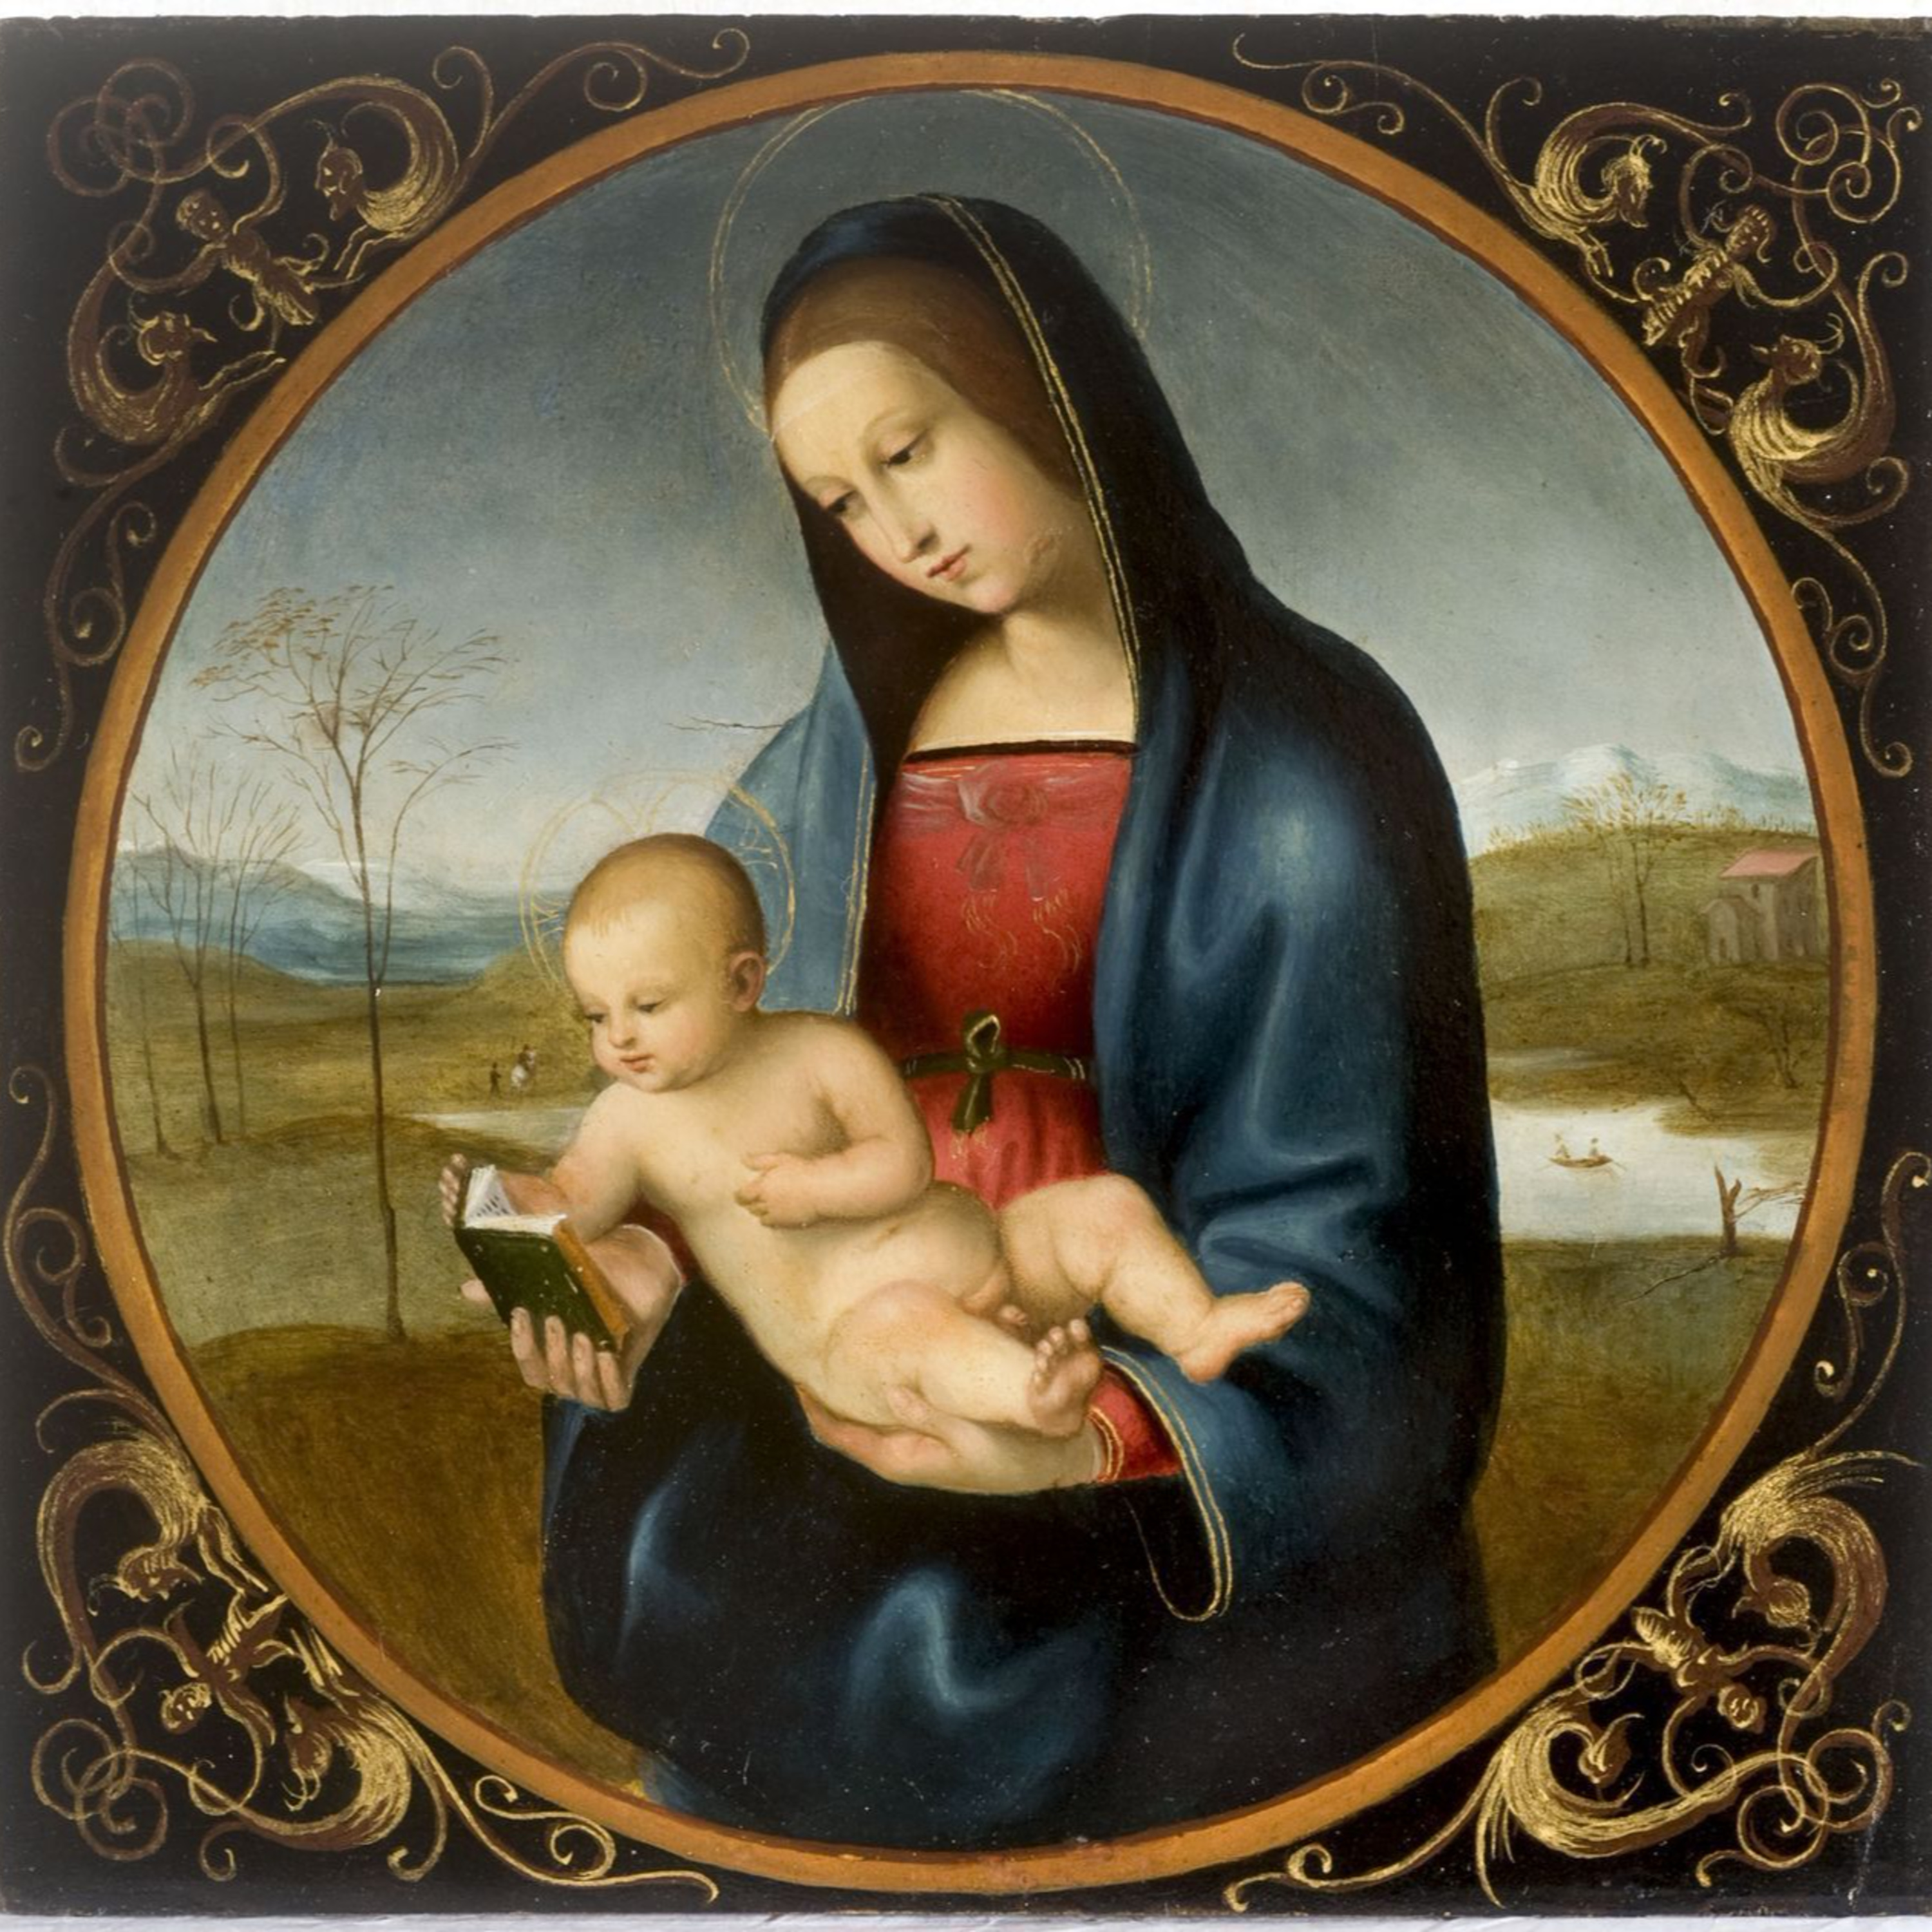 The Virgin Mary, Spouse of the Holy Spirit